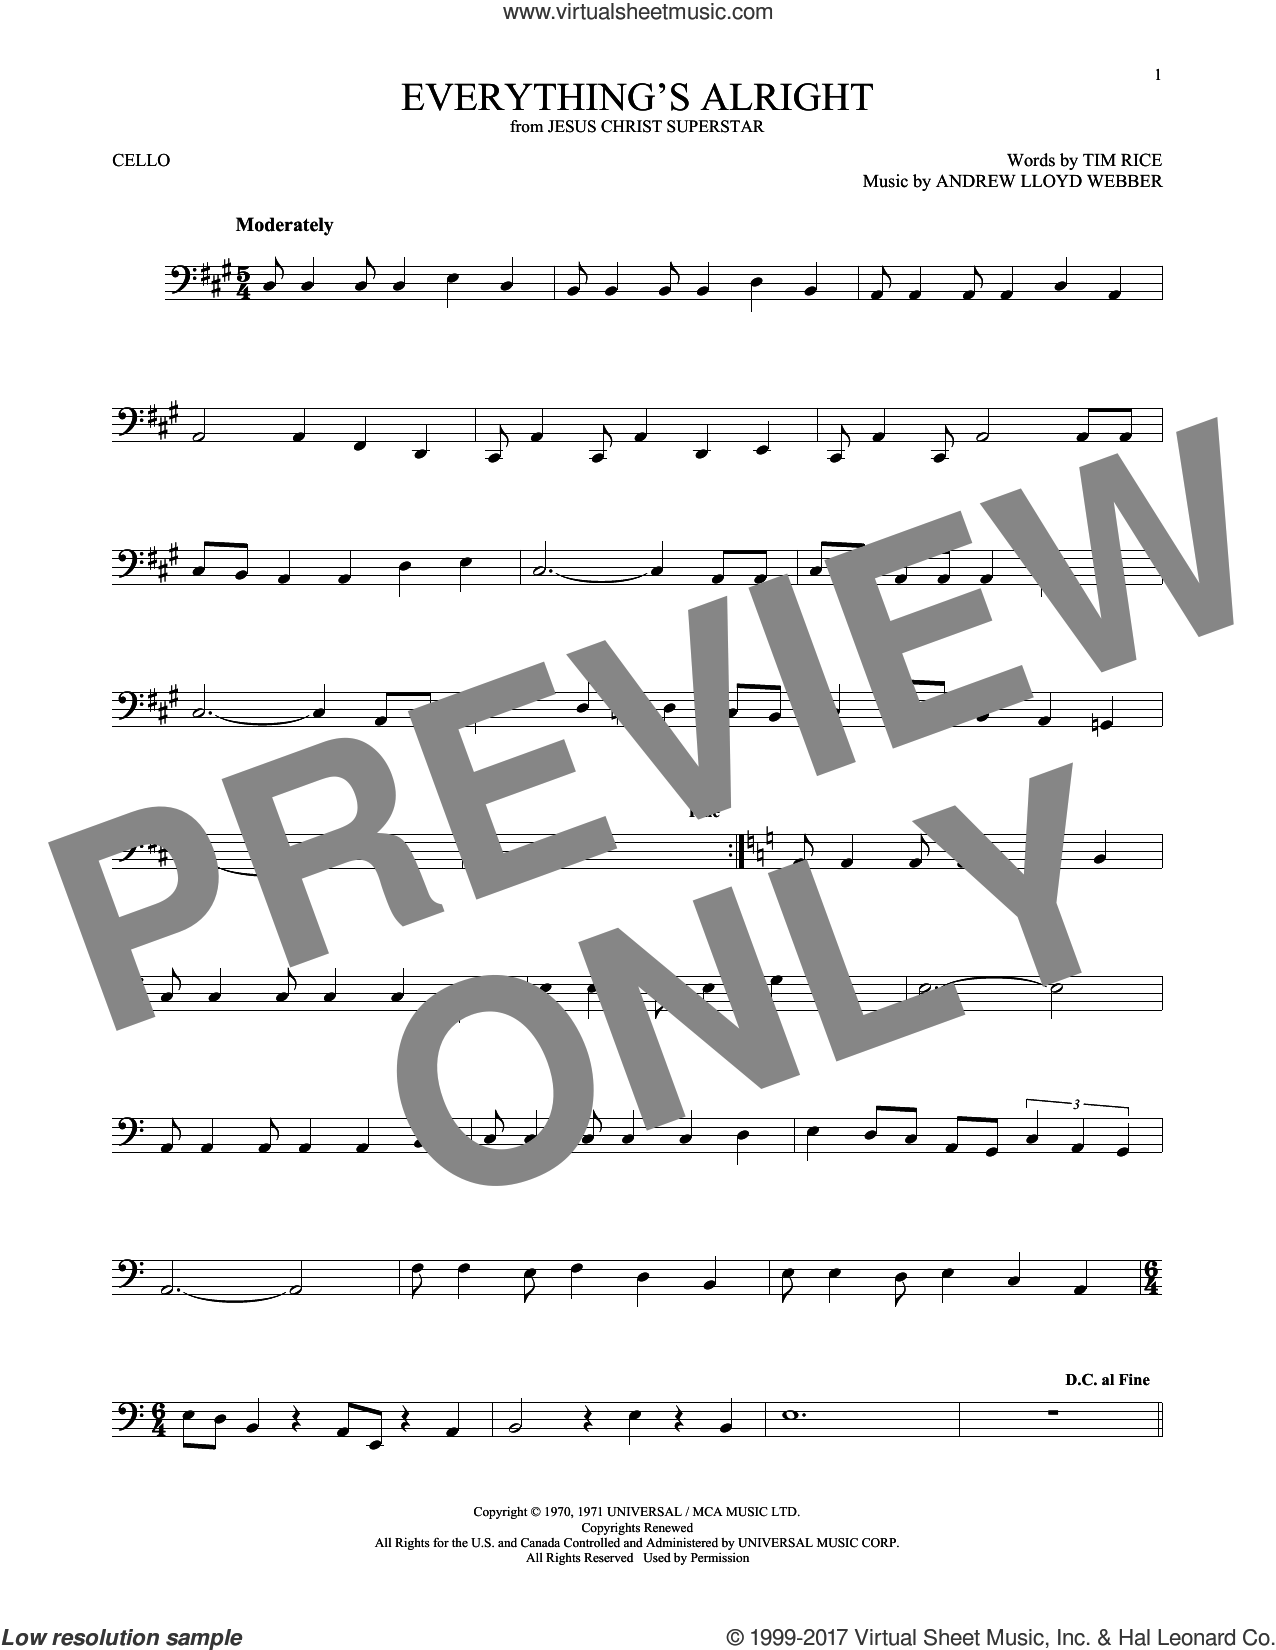 Everything's Alright sheet music for cello solo by Andrew Lloyd Webber, Yvonne Elliman and Tim Rice, intermediate skill level